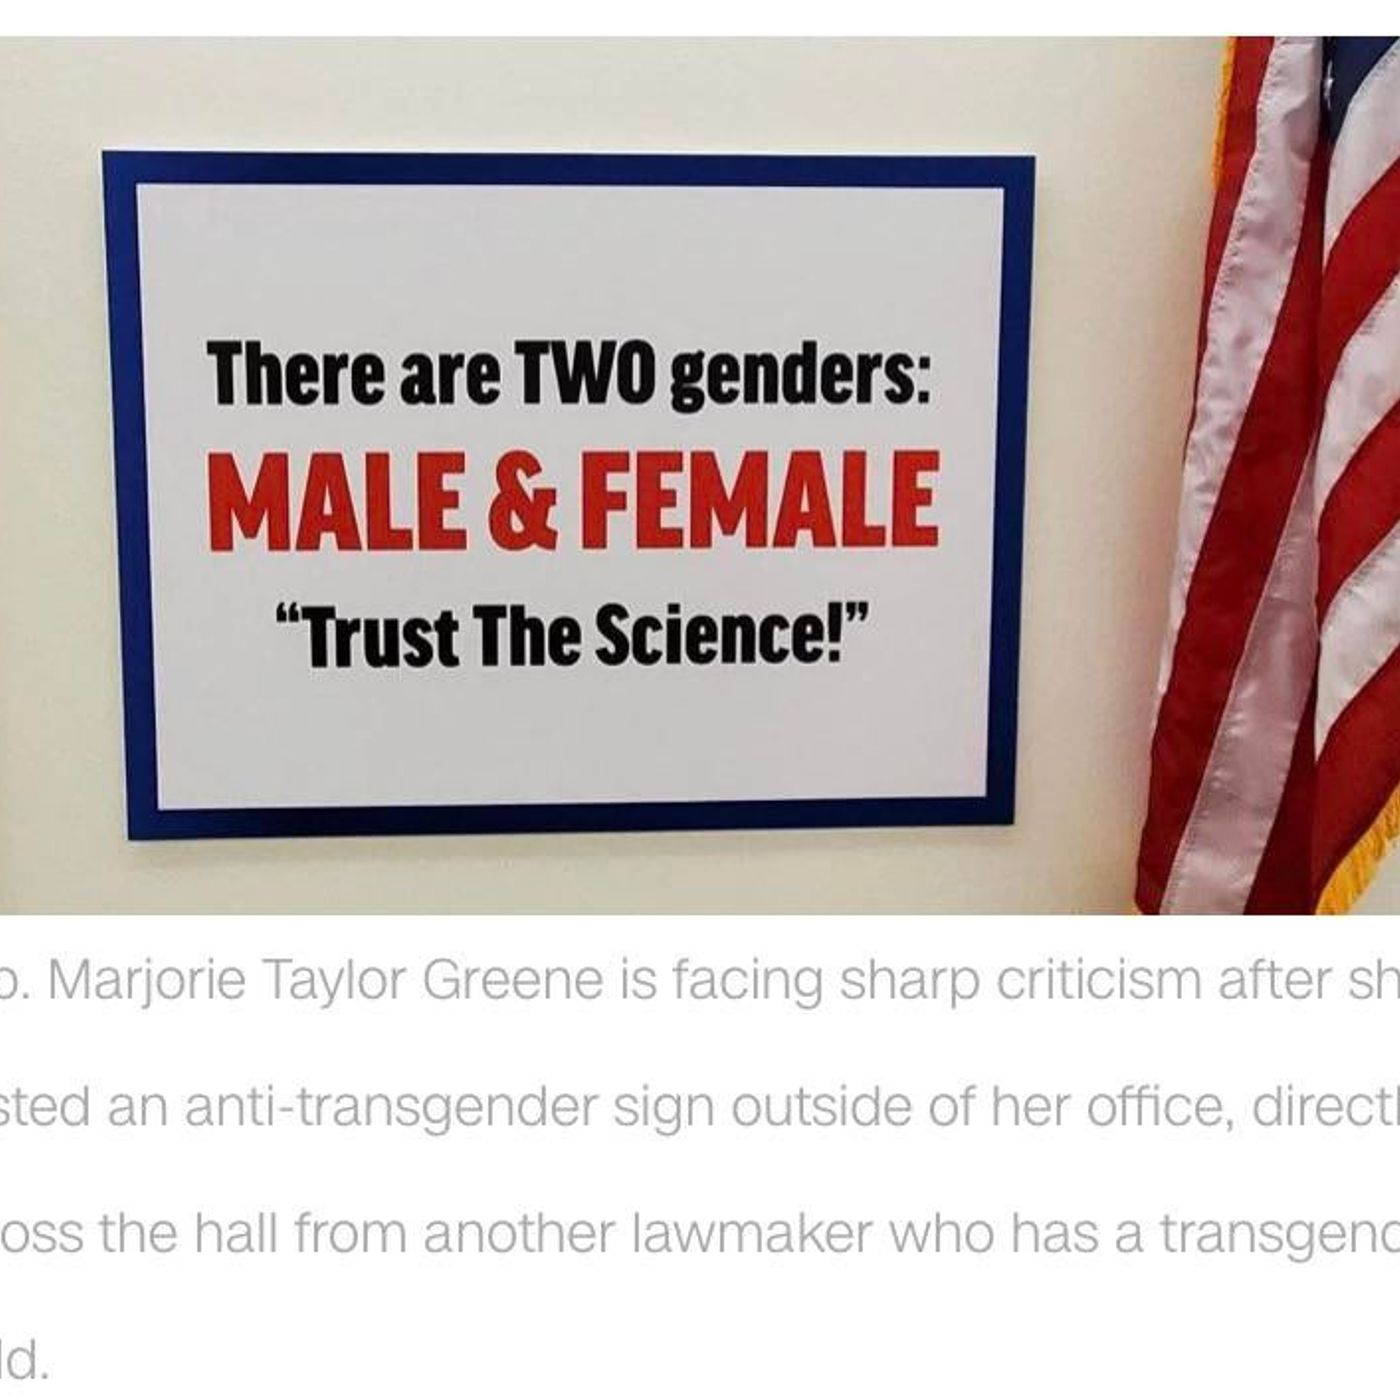 You cannot even make this up - Marjorie Taylor Greene